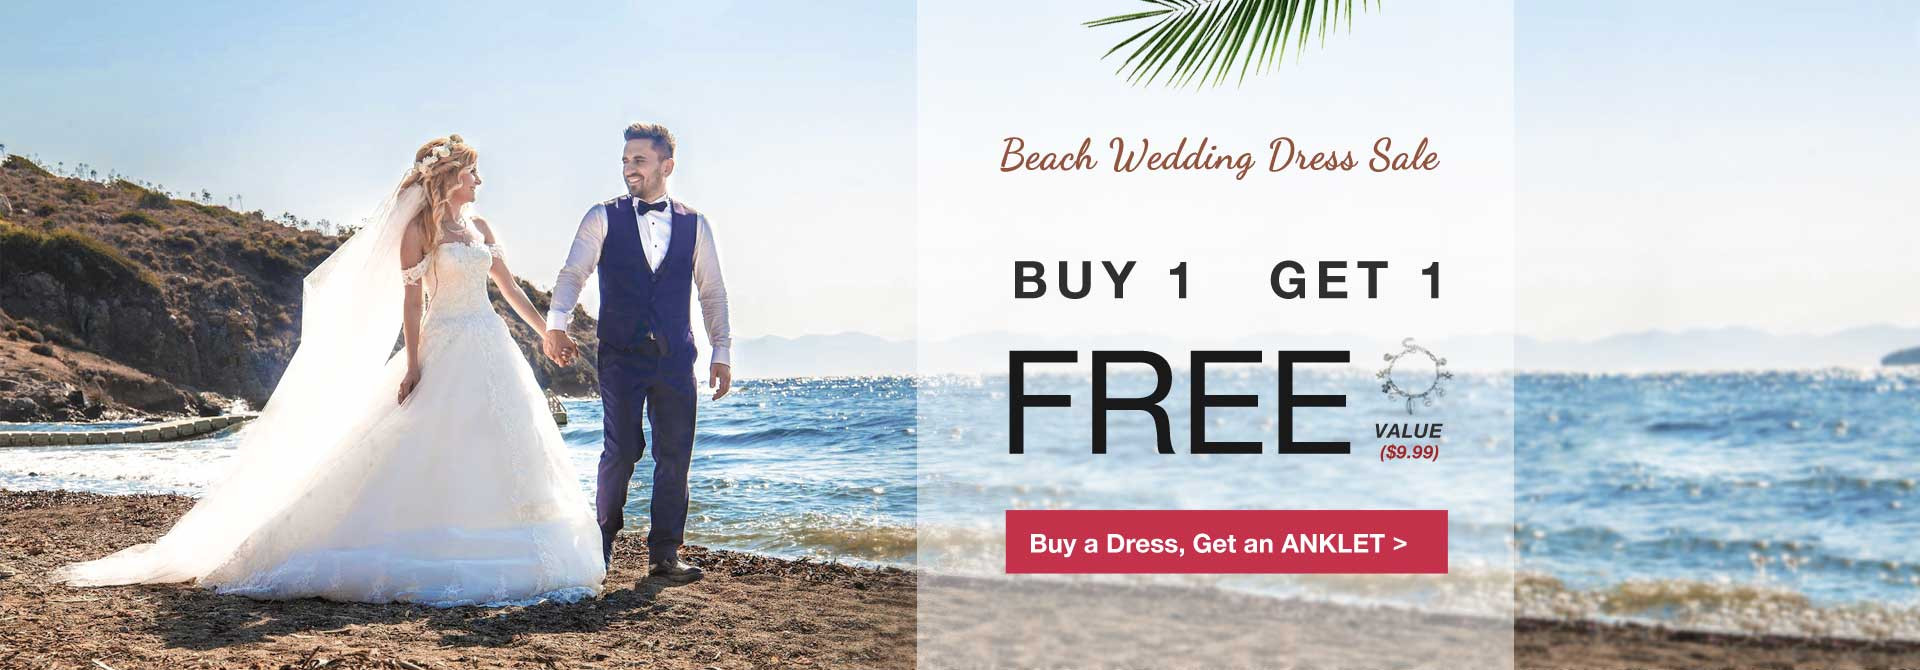 Buy a beach wedding get an anklet for free